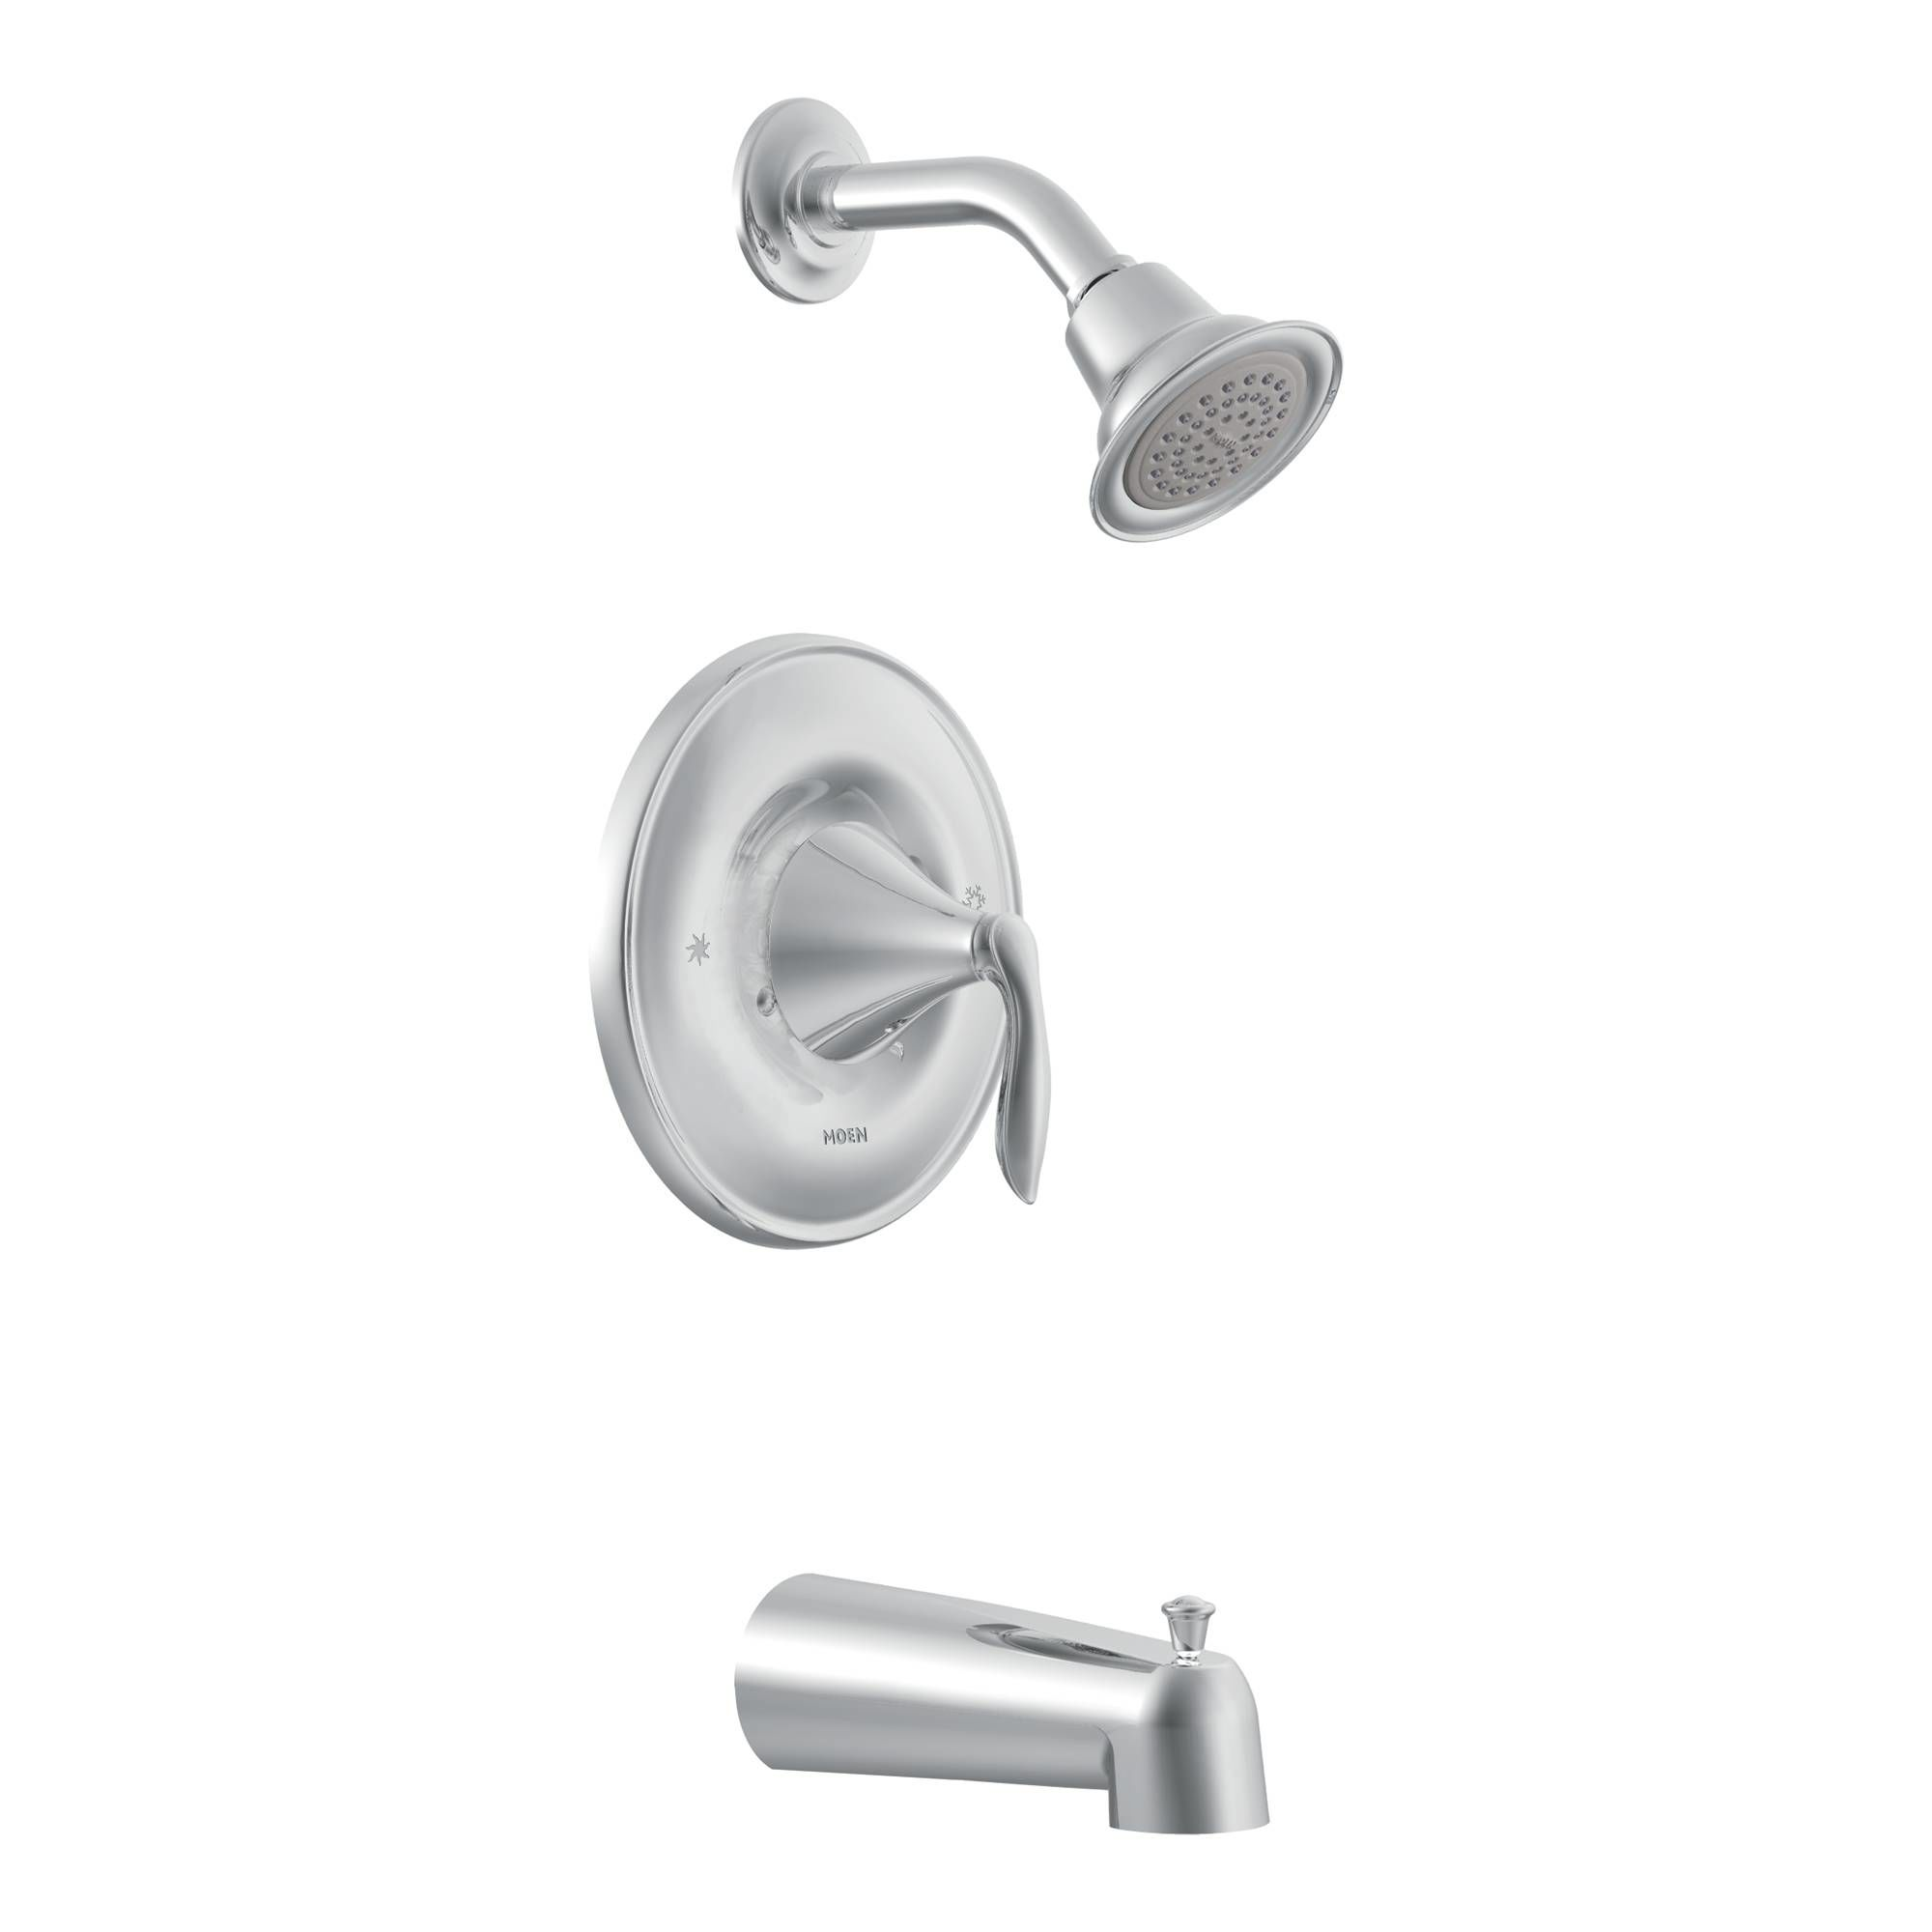 Merveilleux Moen T2133 Chrome Posi Temp Pressure Balanced Tub And Shower Trim With 2.5  GPM Shower Head And Tub Spout From The Eva Collection (Less Valve)   Faucet .com